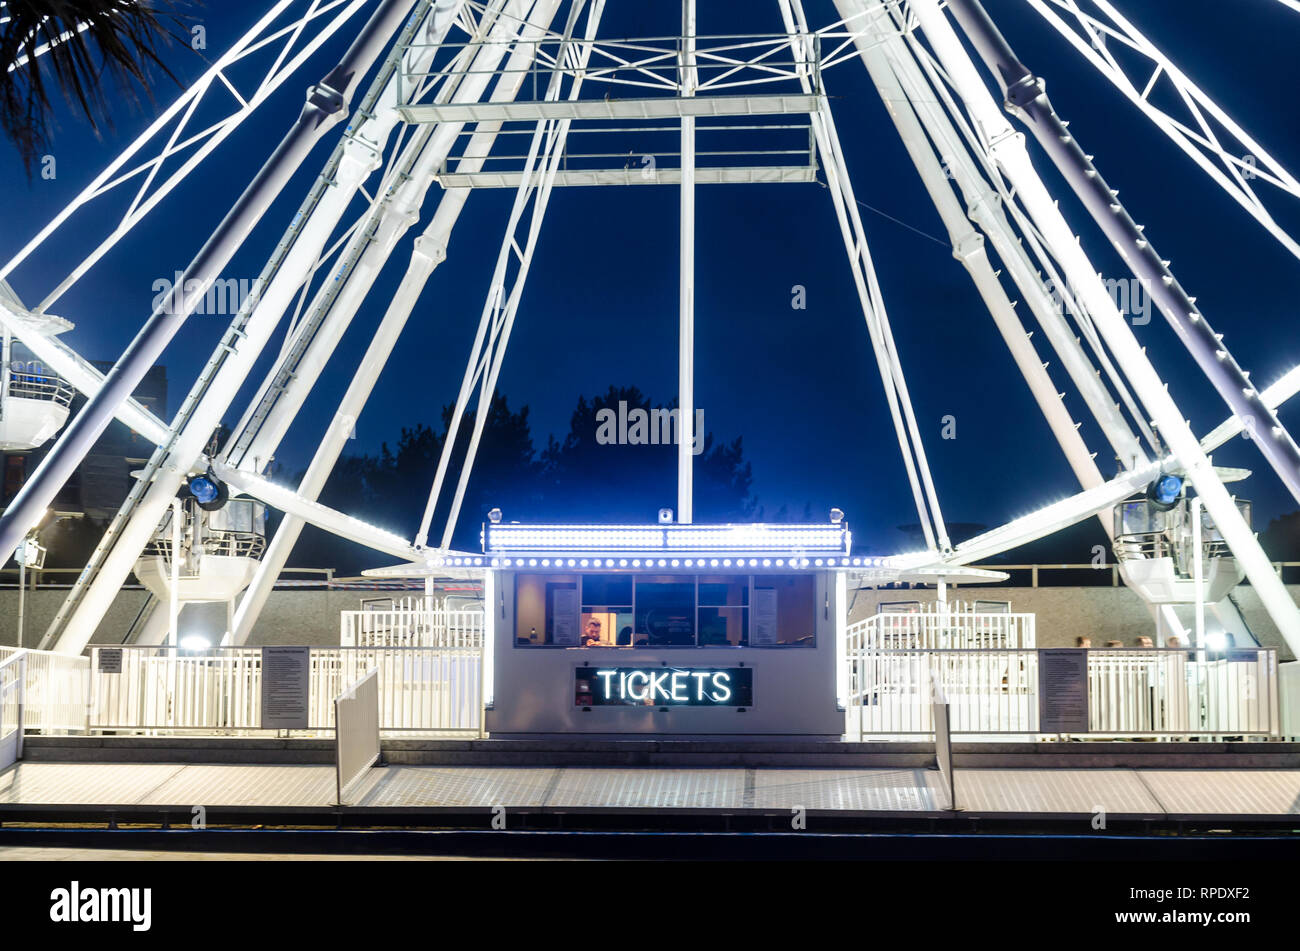 The big wheel at Bournemouth stands tall into the night sky and is brightly lit up white. - Stock Image